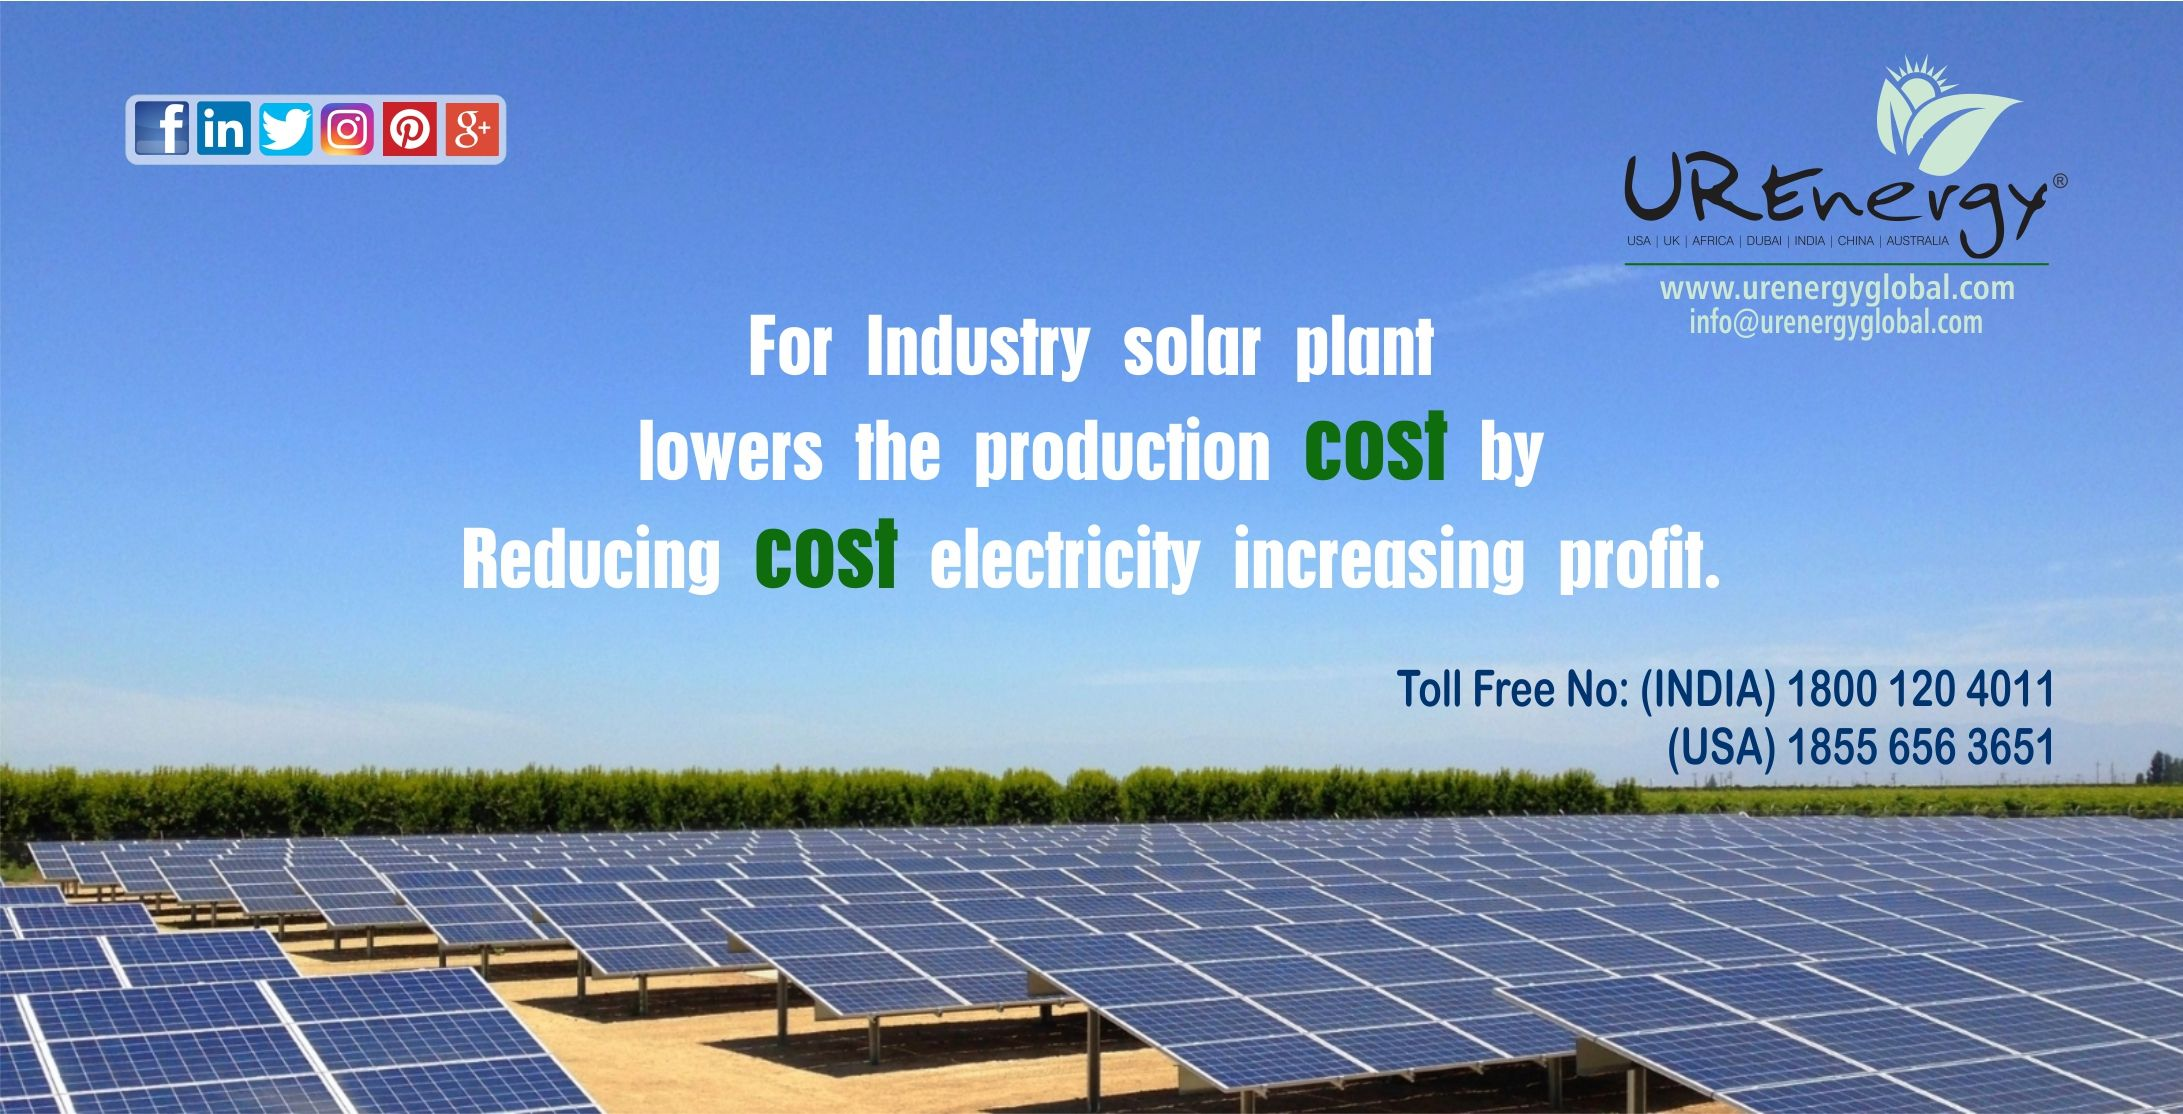 Solar Power Panel Inverters Irrigation Pumps Street Light Epc Solar Water Pump Solar Renewable Energy Companies